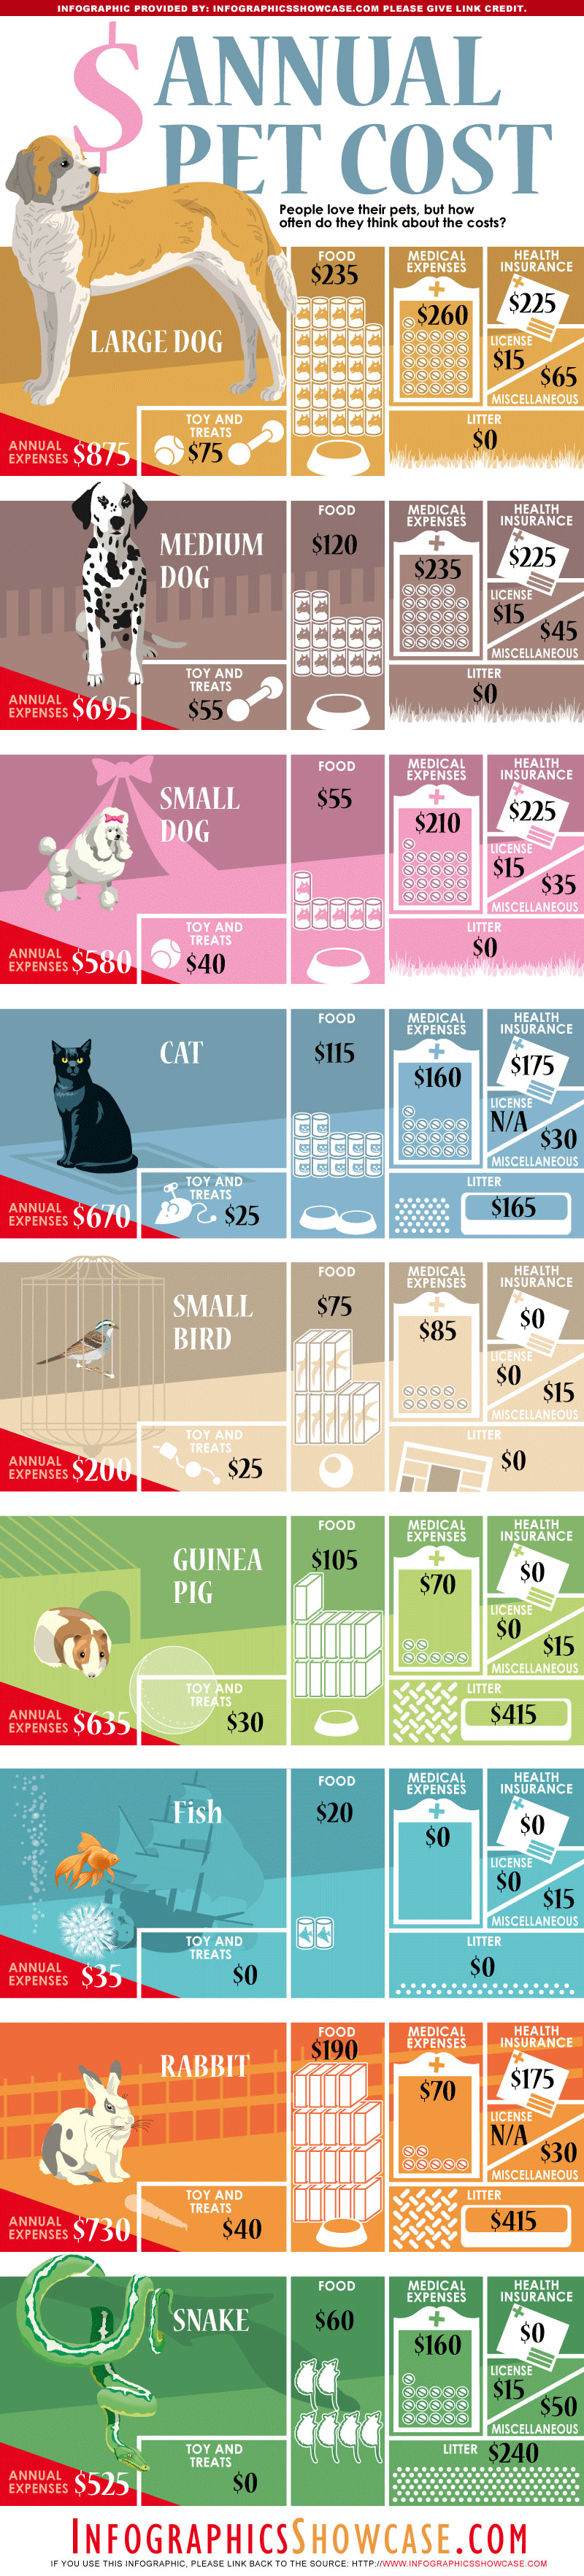 http://www.infographicsshowcase.com/wp-content/uploads/2013/01/Pet-Costs-Infographic.jpg